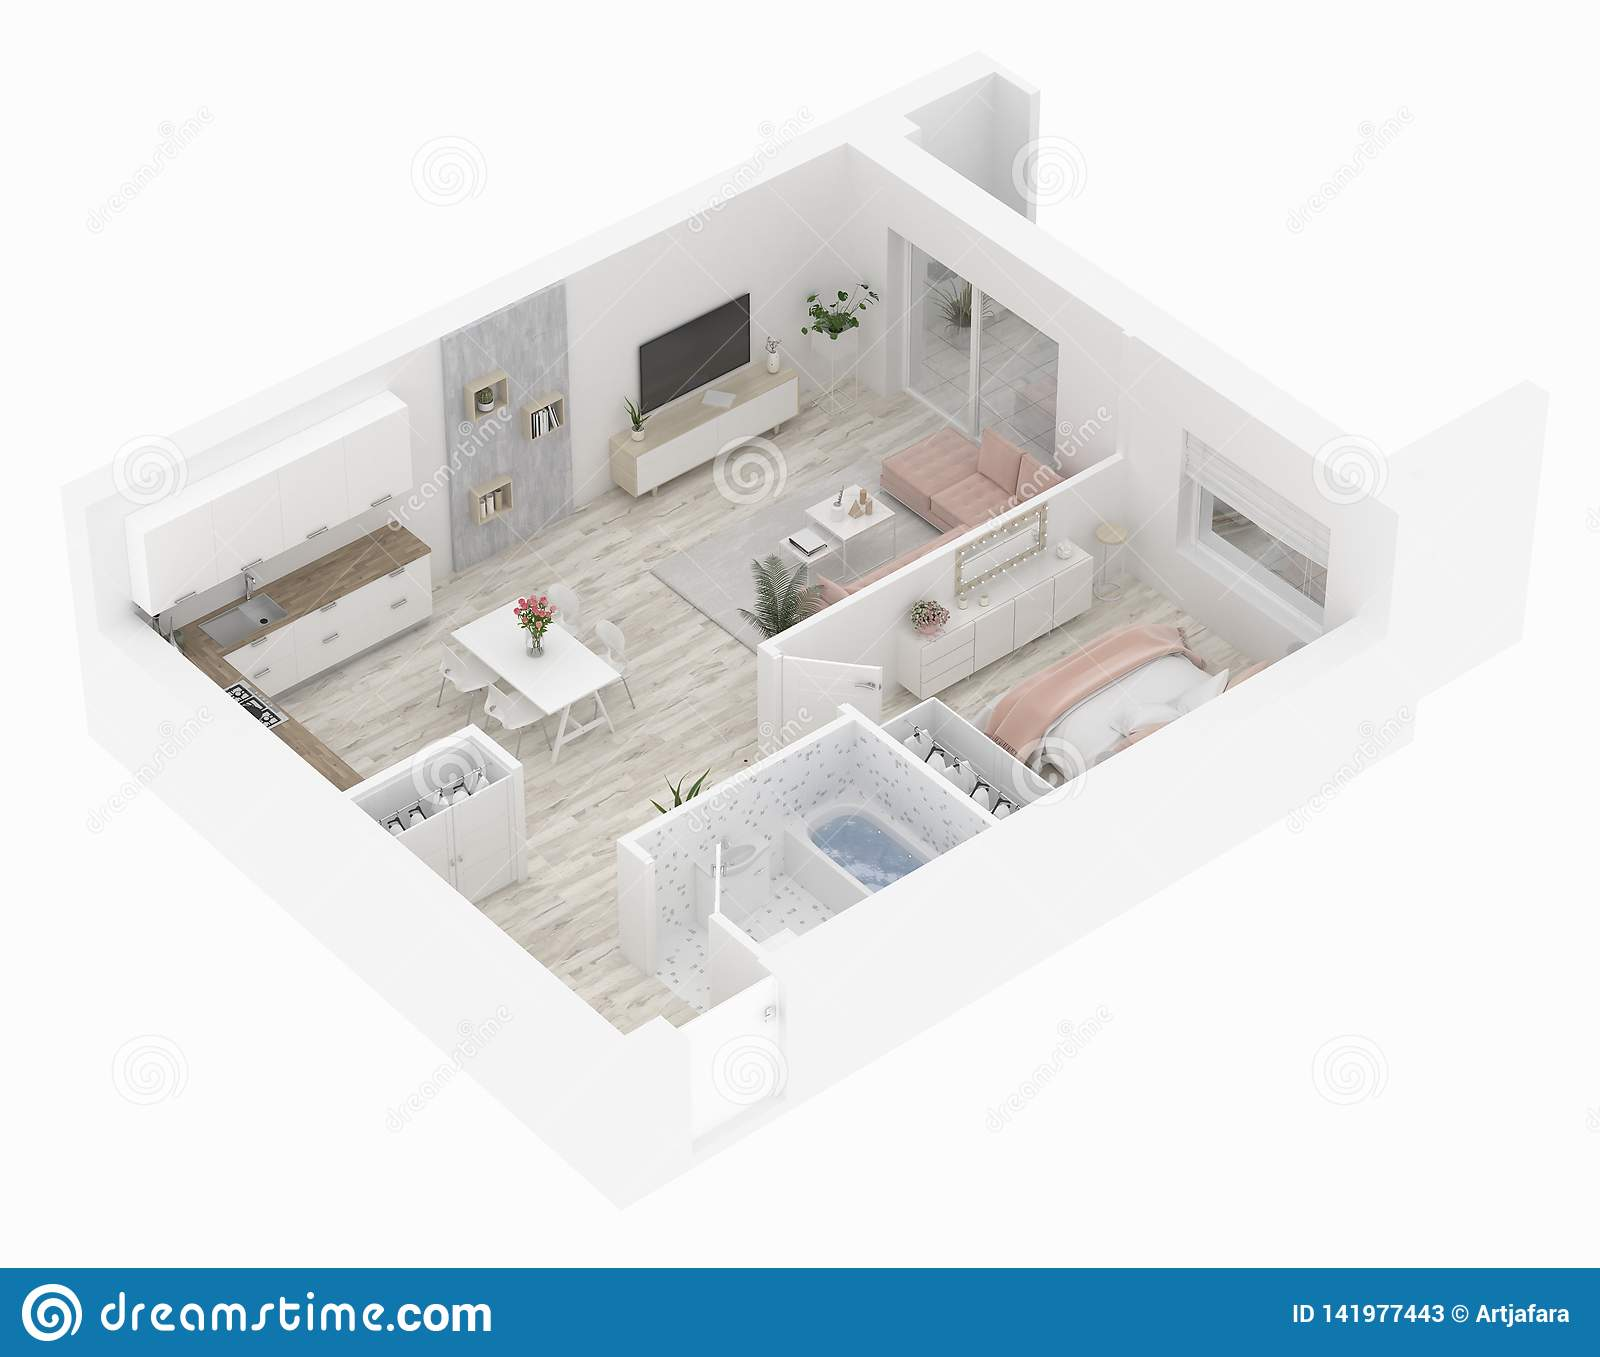 Floor Plan Of A Home Top View Open Concept Living Apartment Layout Stock Illustration Illustration Of Home Hotel 141977443